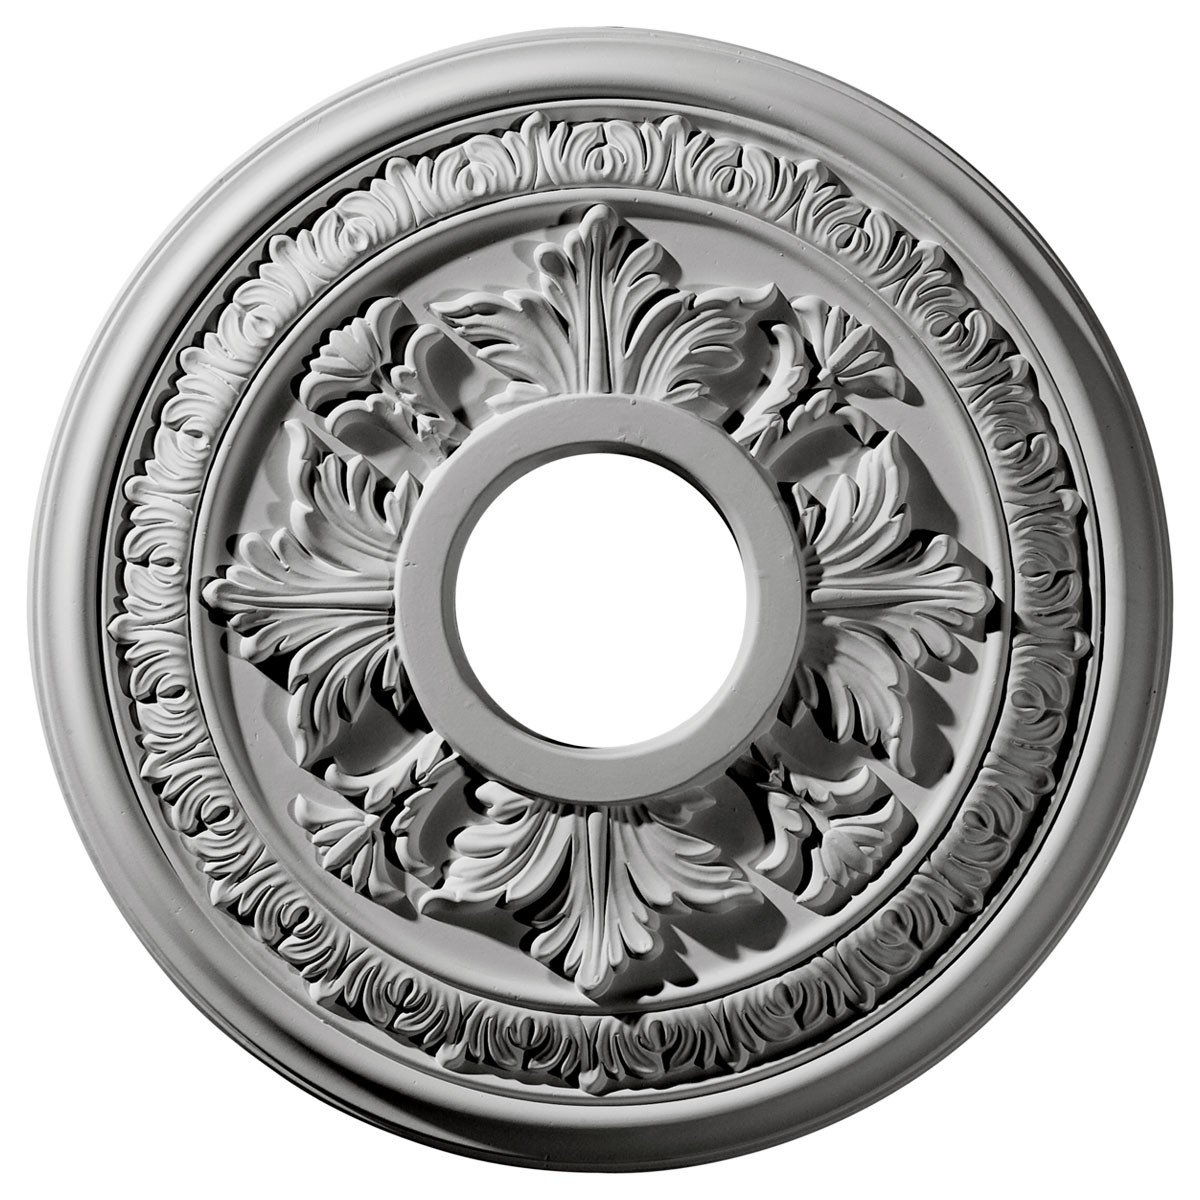 "EM-CM15BA - 15 3/8""OD x 4 1/4""ID x 1 1/2""P Baltimore Ceiling Medallion (Fits Canopies up to 5 1/2"")"